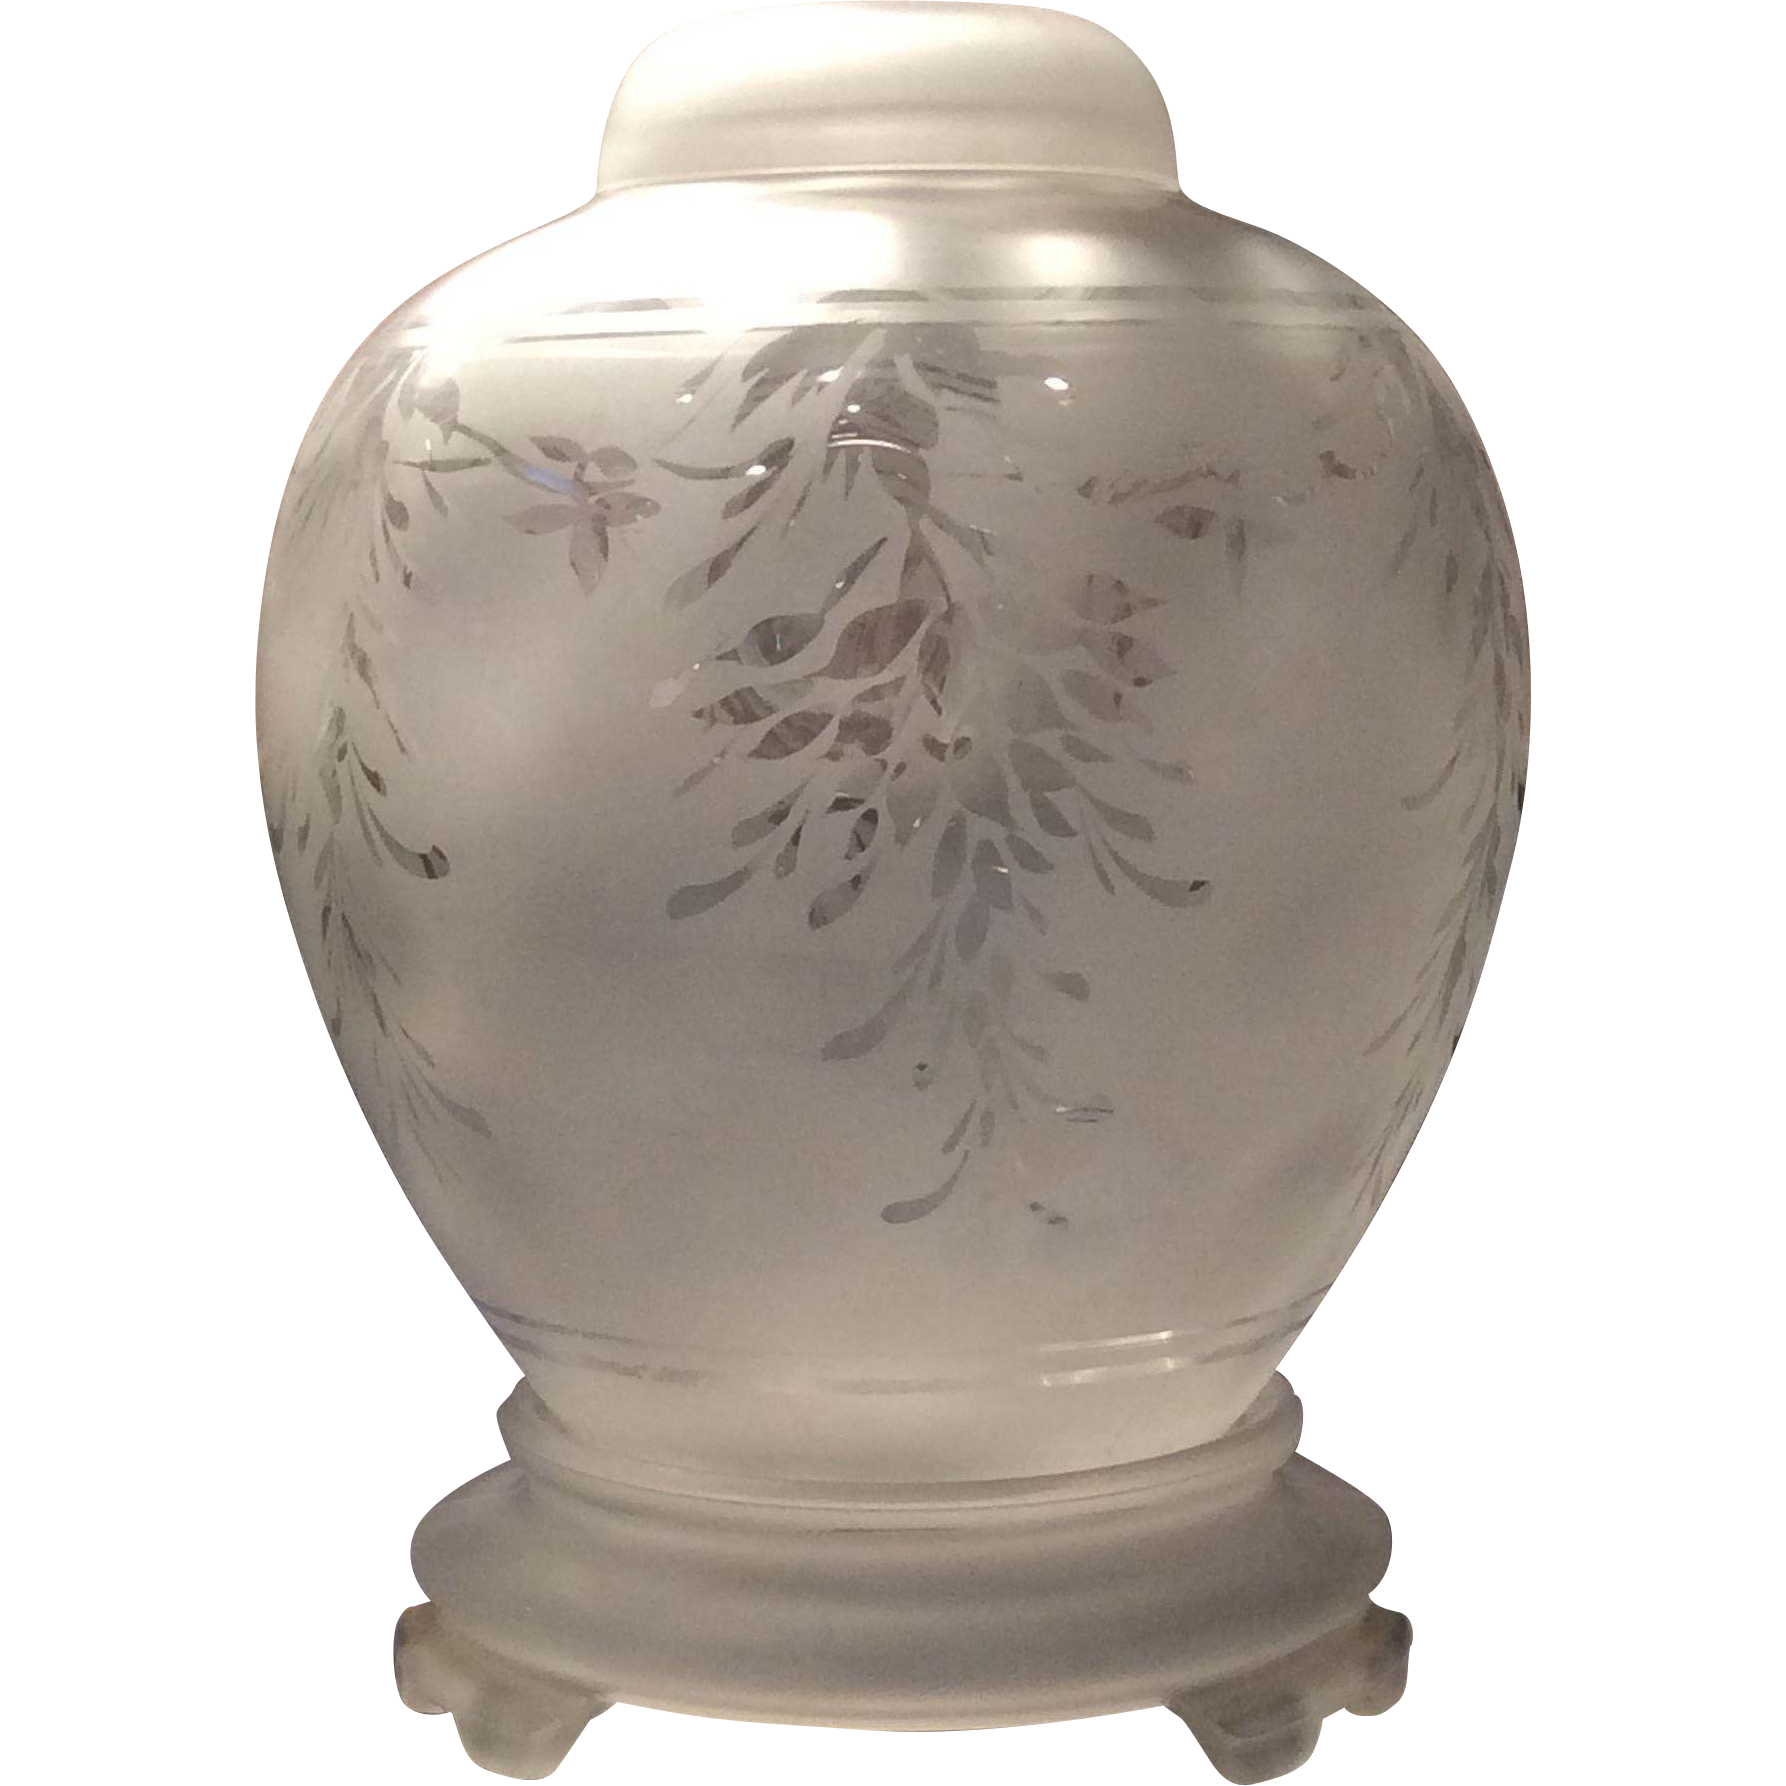 Fenton No. 893 Satin Crystal Wistaria Ginger Jar